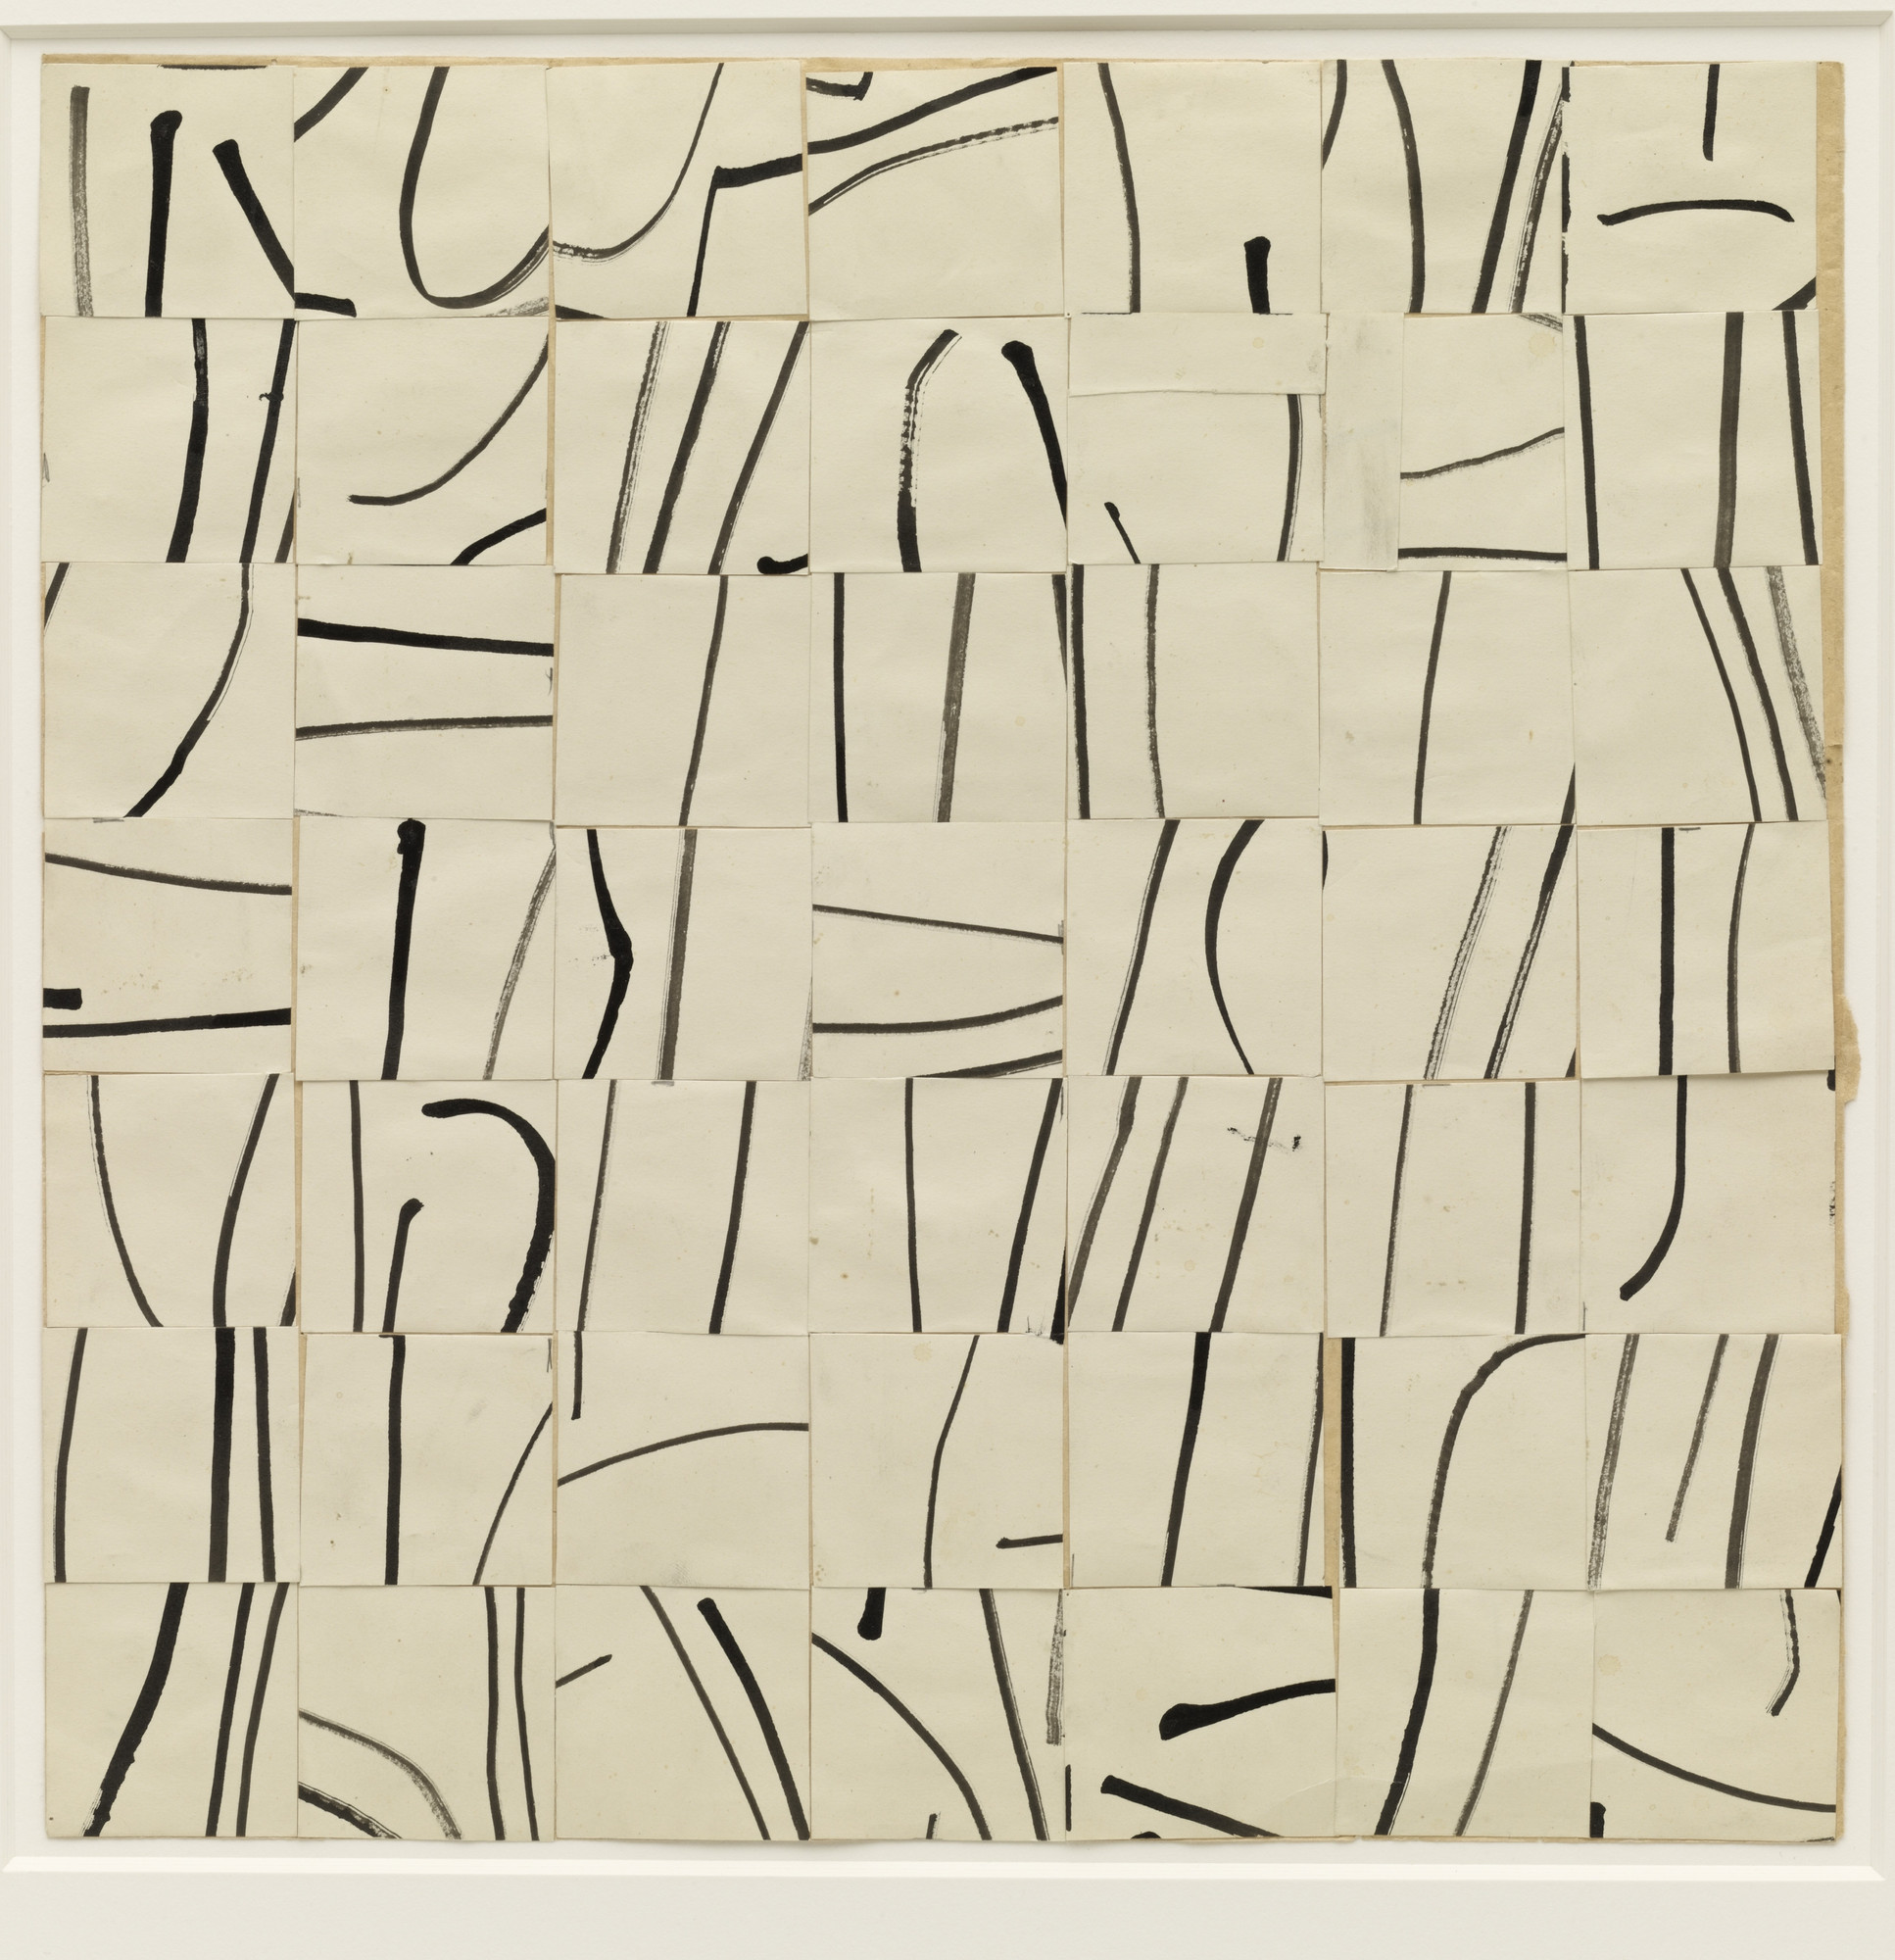 Ellsworth Kelly. Brushstrokes Cut into Forty-Nine Squares and Arranged by Chance. 1951